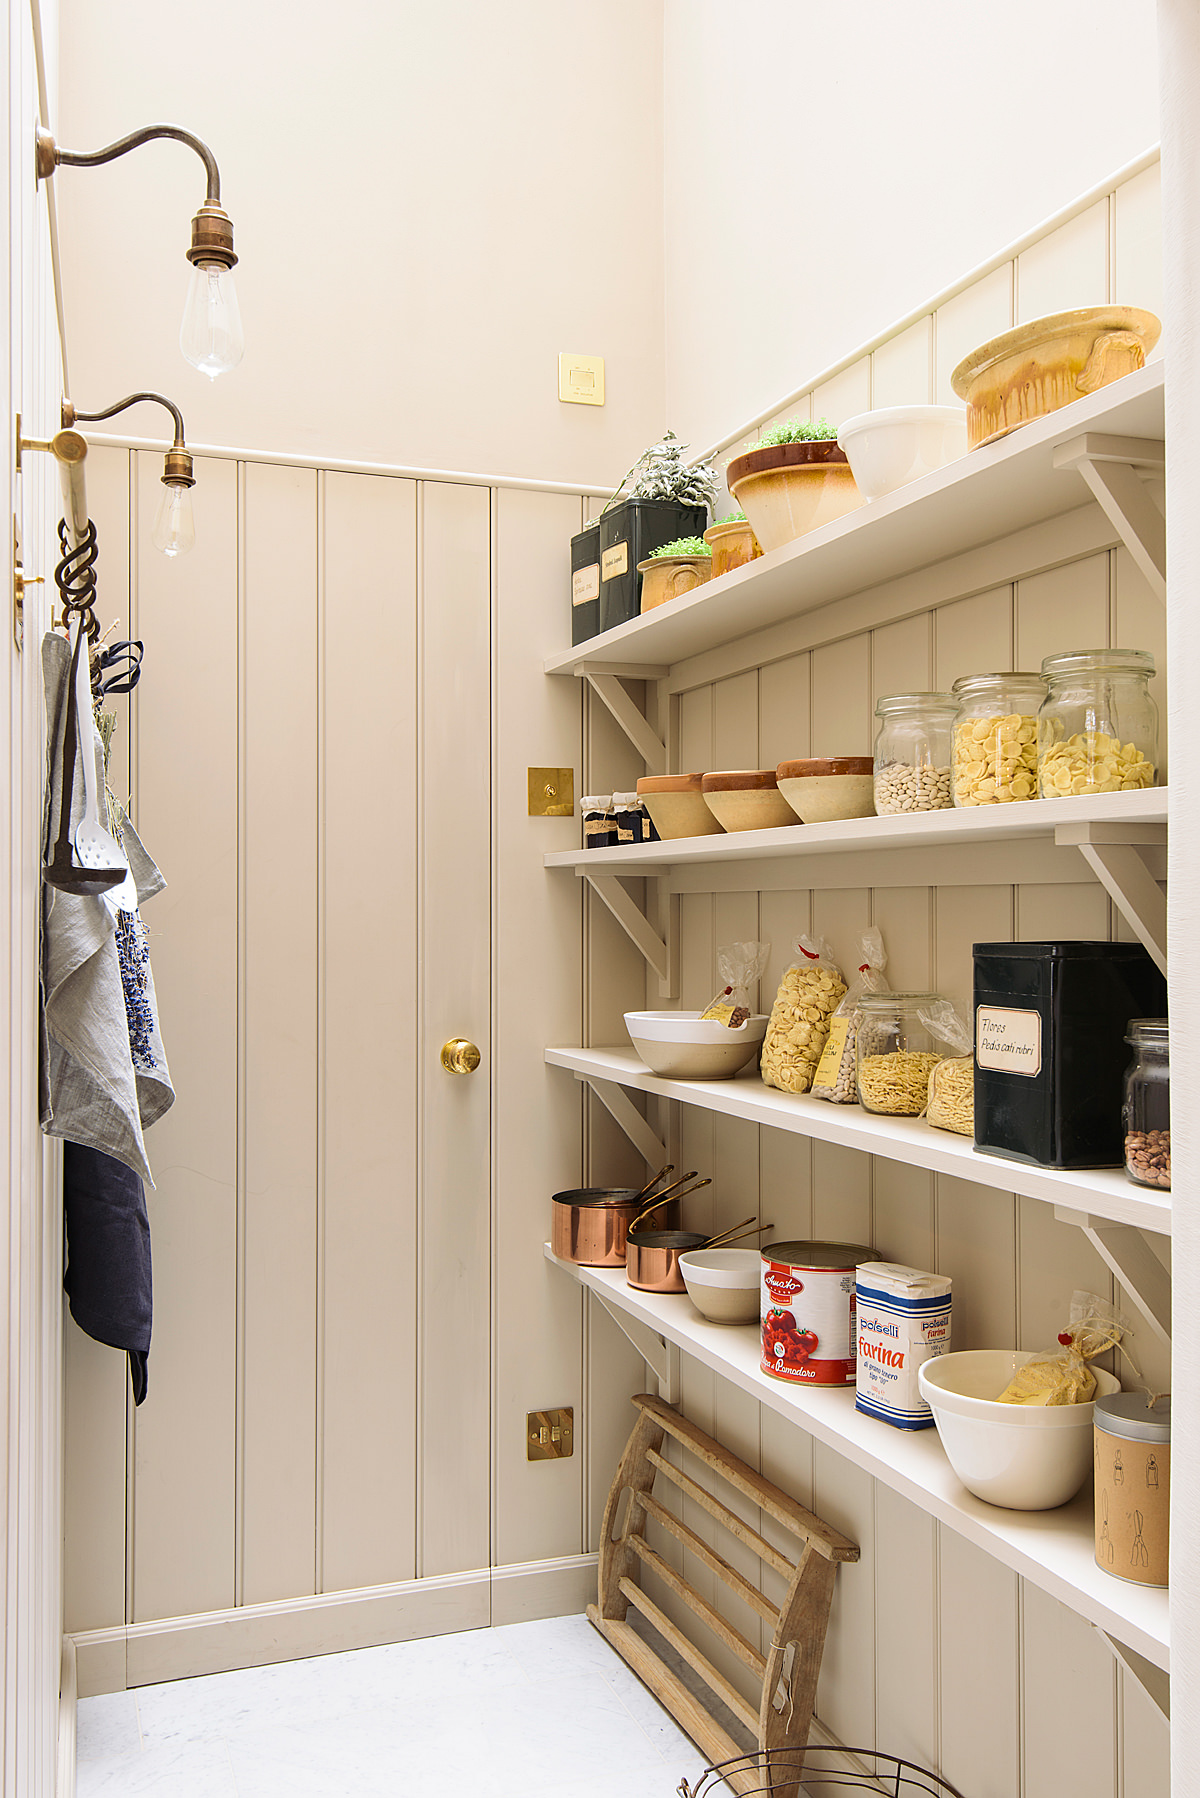 walk-in-pantry-2-